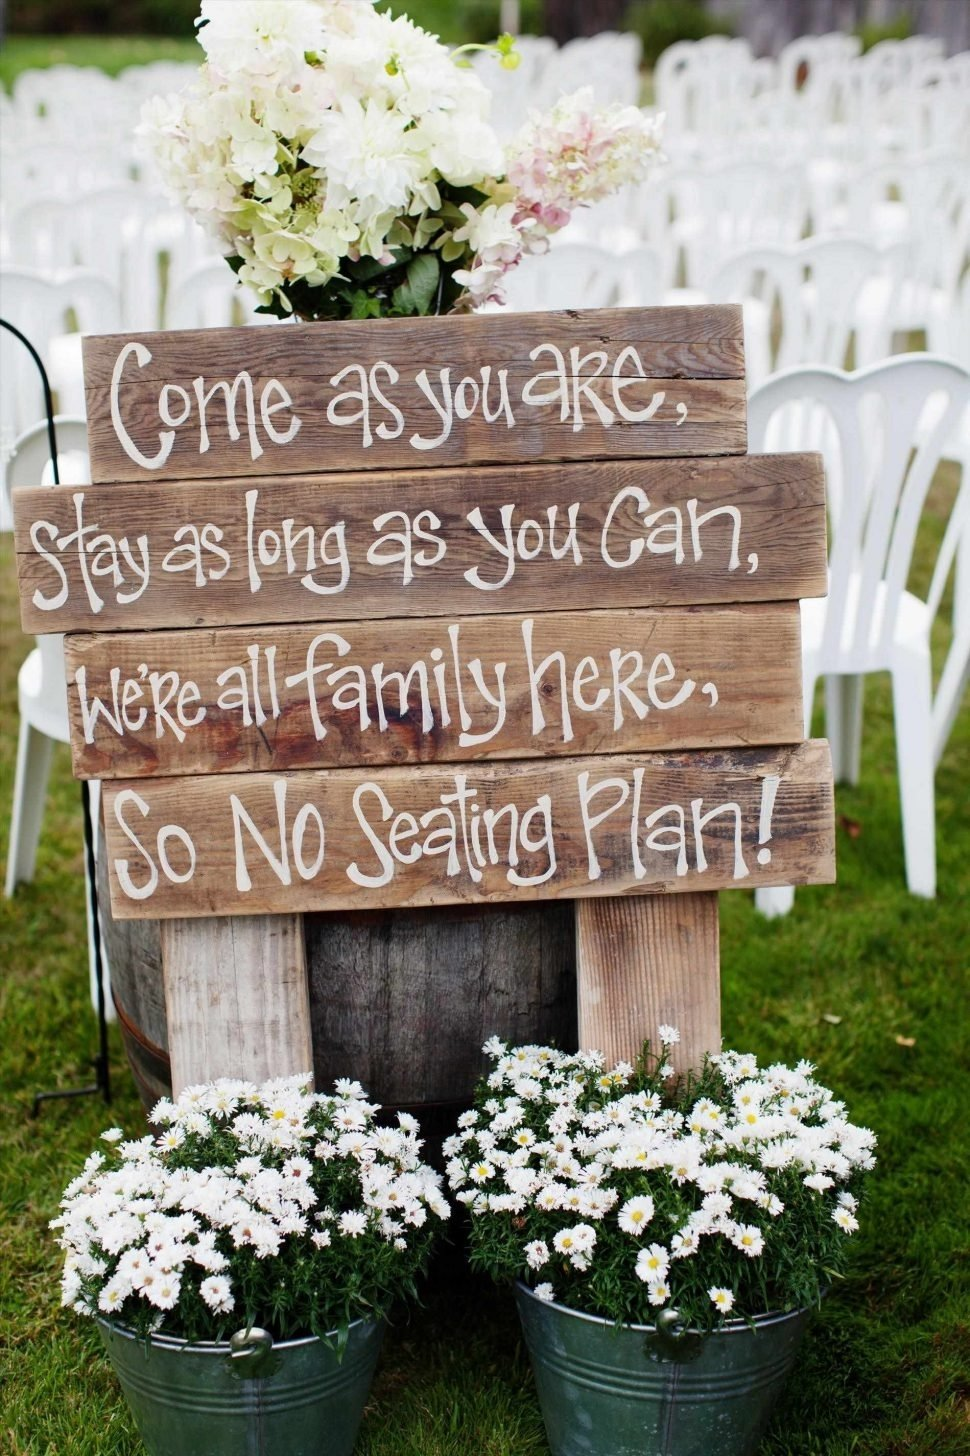 10 Lovely Country Wedding Ideas For Summer wedding lake wedding ideas tahoe themed outdoor country for summer 2020